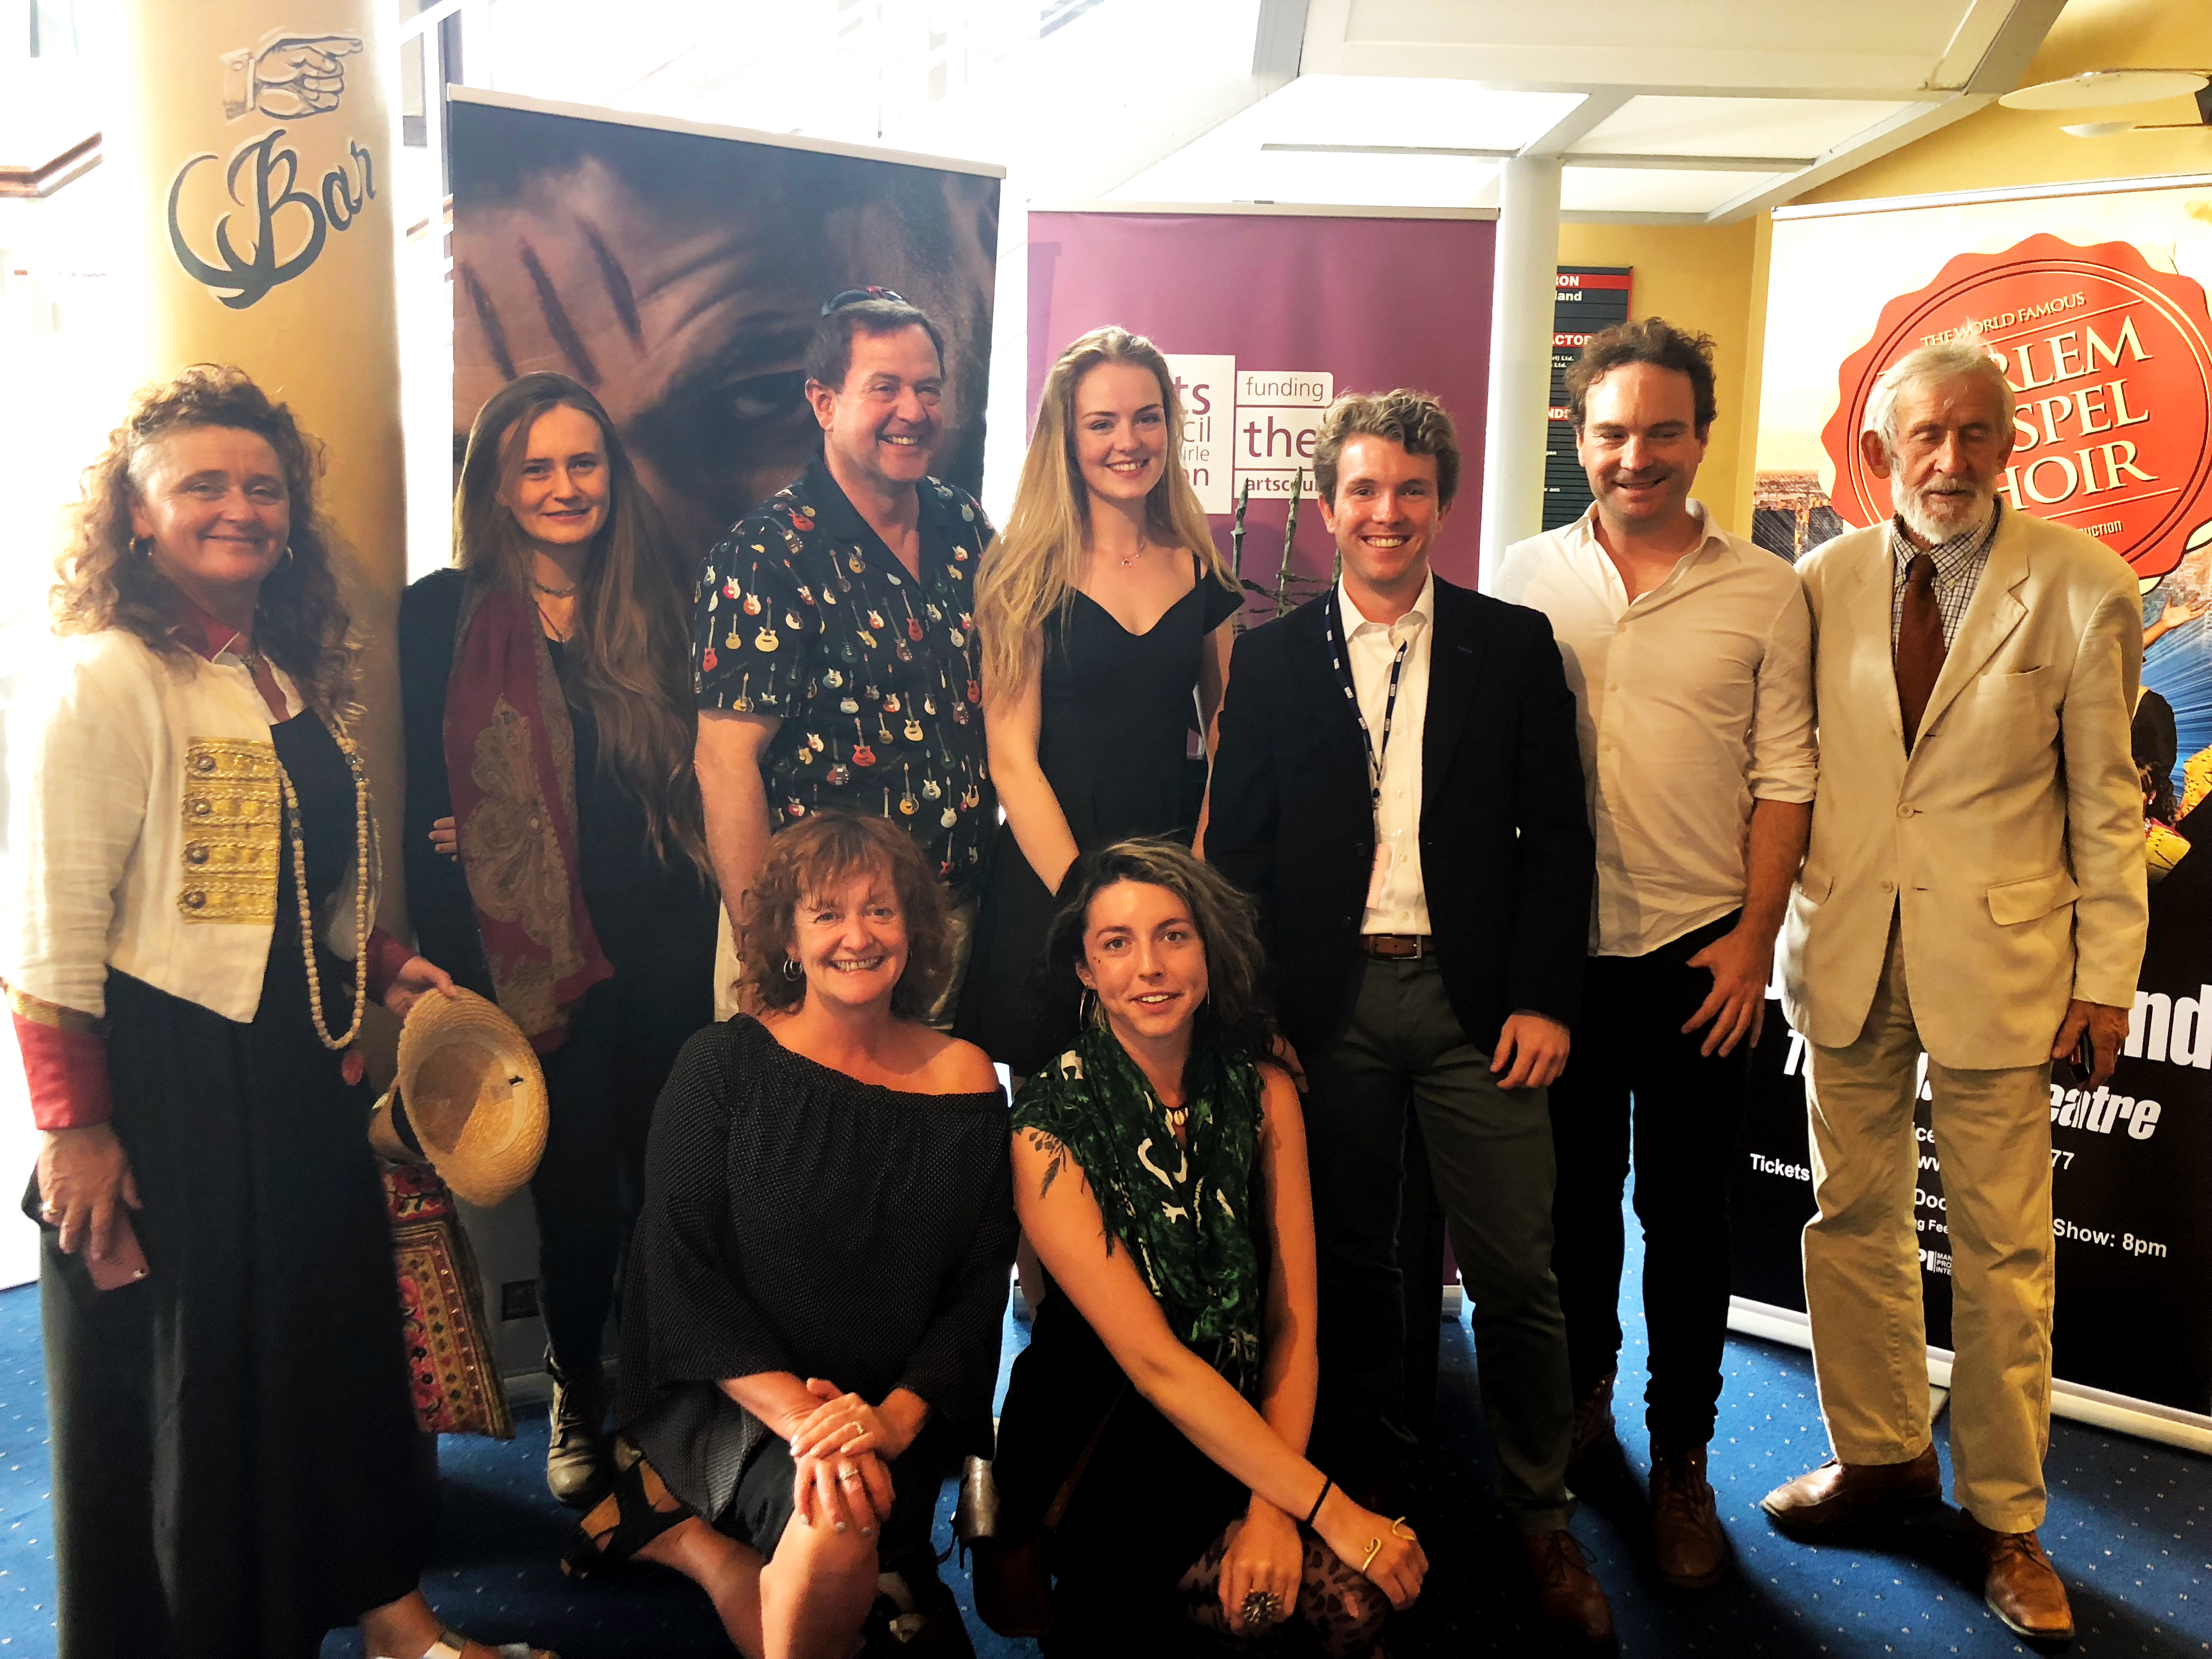 Westphal alum Kevin Quinn with cast & crew of the American Wake at the Galway Film Fleadh